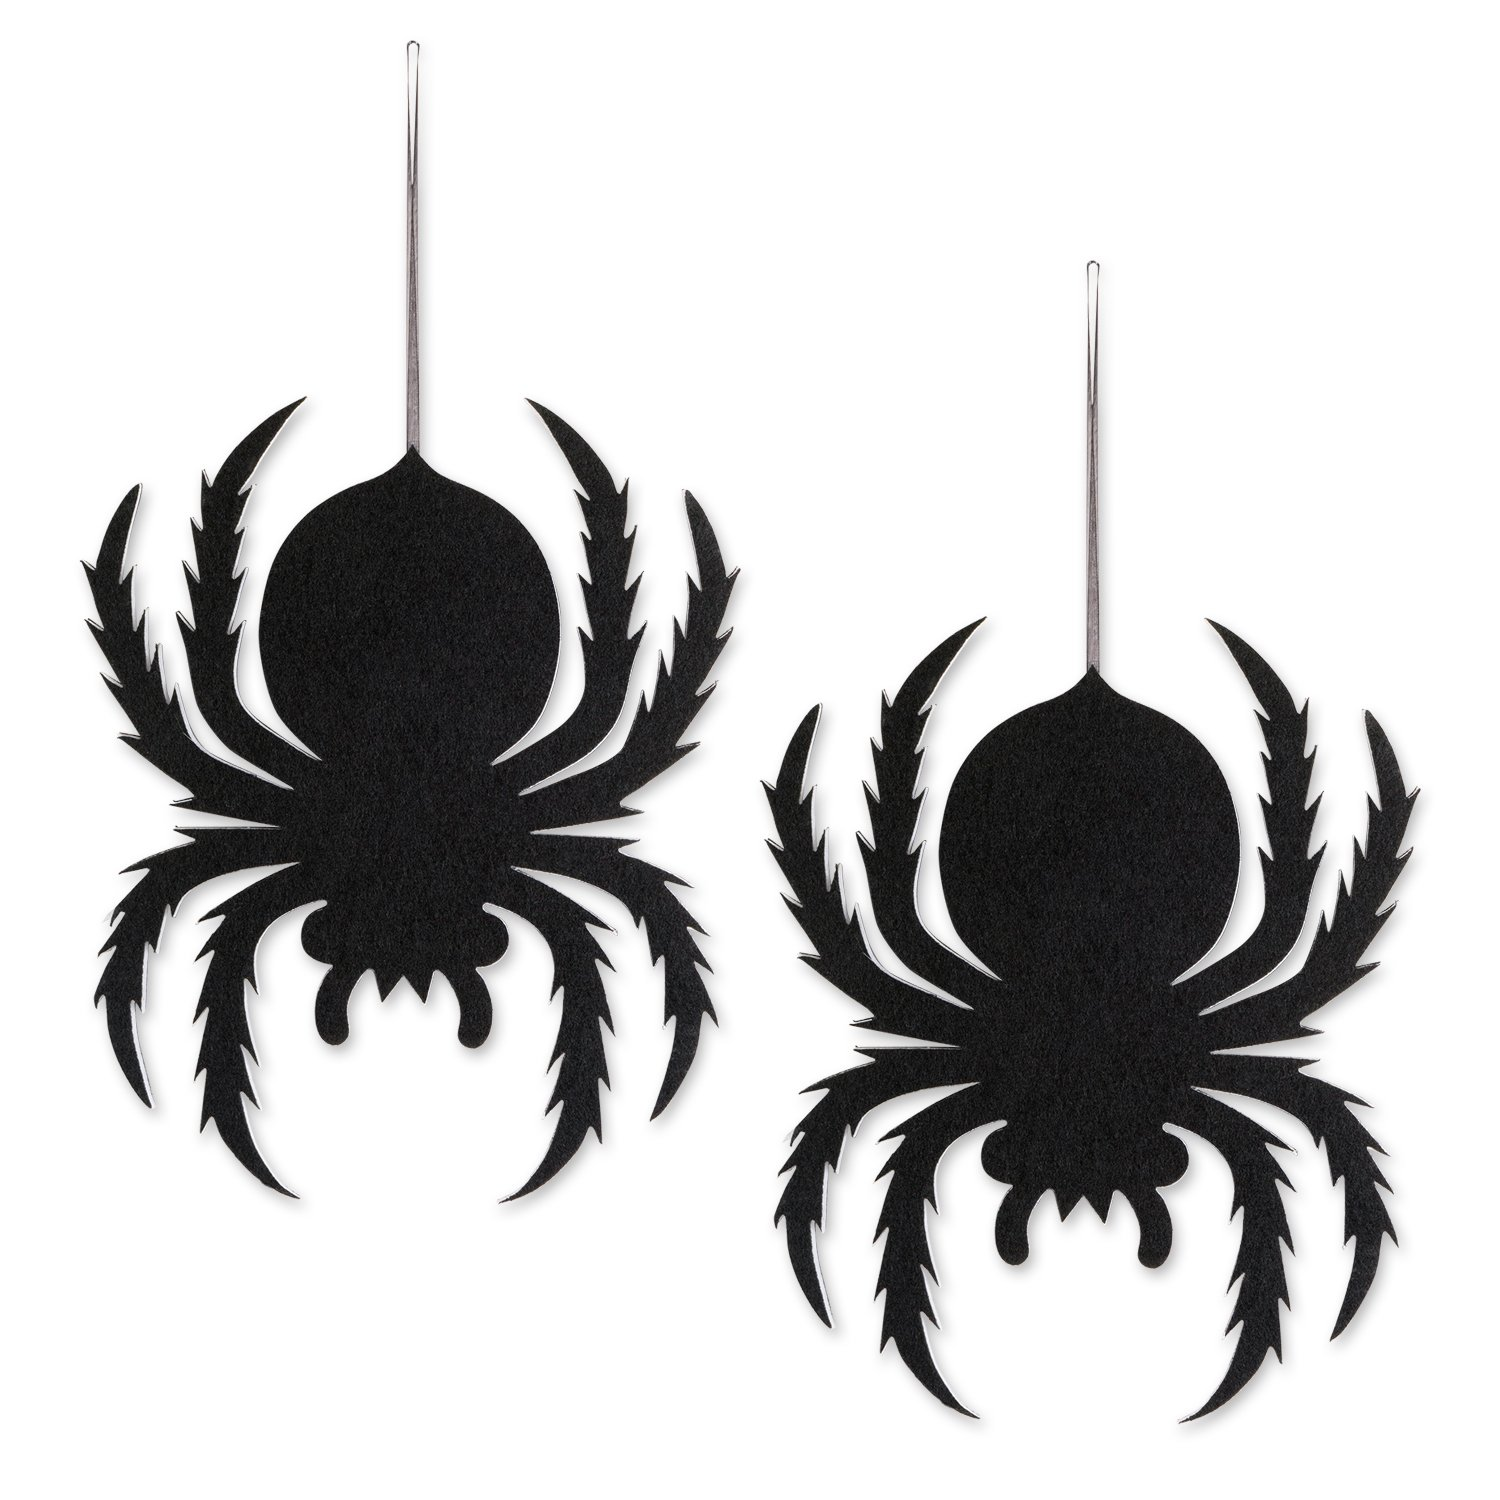 DII Indoor and Outdoor Foam Halloween Hanging Door Decorations and Wall Signs,  For Home, School, Office, Party Decorations, Set of 2 - Spiders